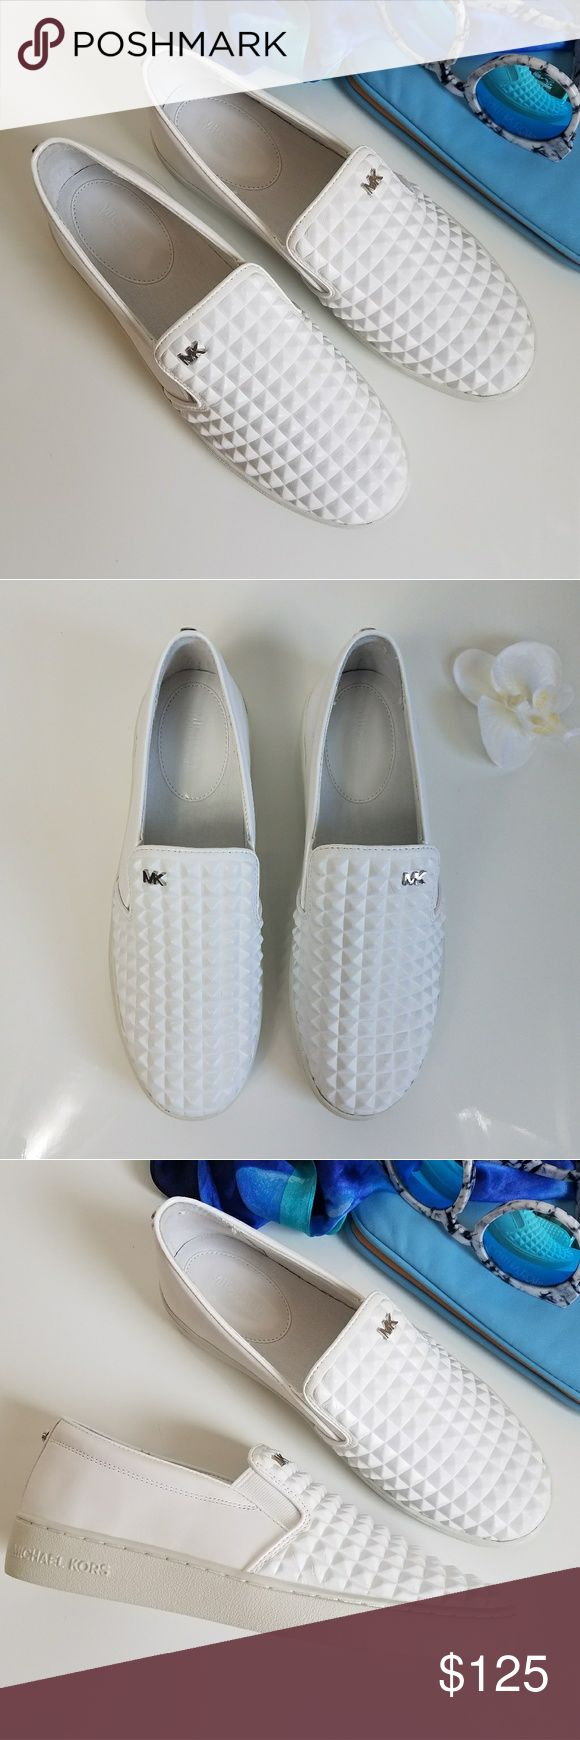 MICHAEL KORS 'PRATT' STUDDED SLIP ON SNEAKER Pyramid stud embossing and thin patent trim define this edgy and comfortable slip-on sneaker. Slip-on style. Leather upper/leather and textile lining/rubber sole. By MICHAEL Michael Kors. Brand new. MICHAEL Michael Kors Shoes Athletic Shoes